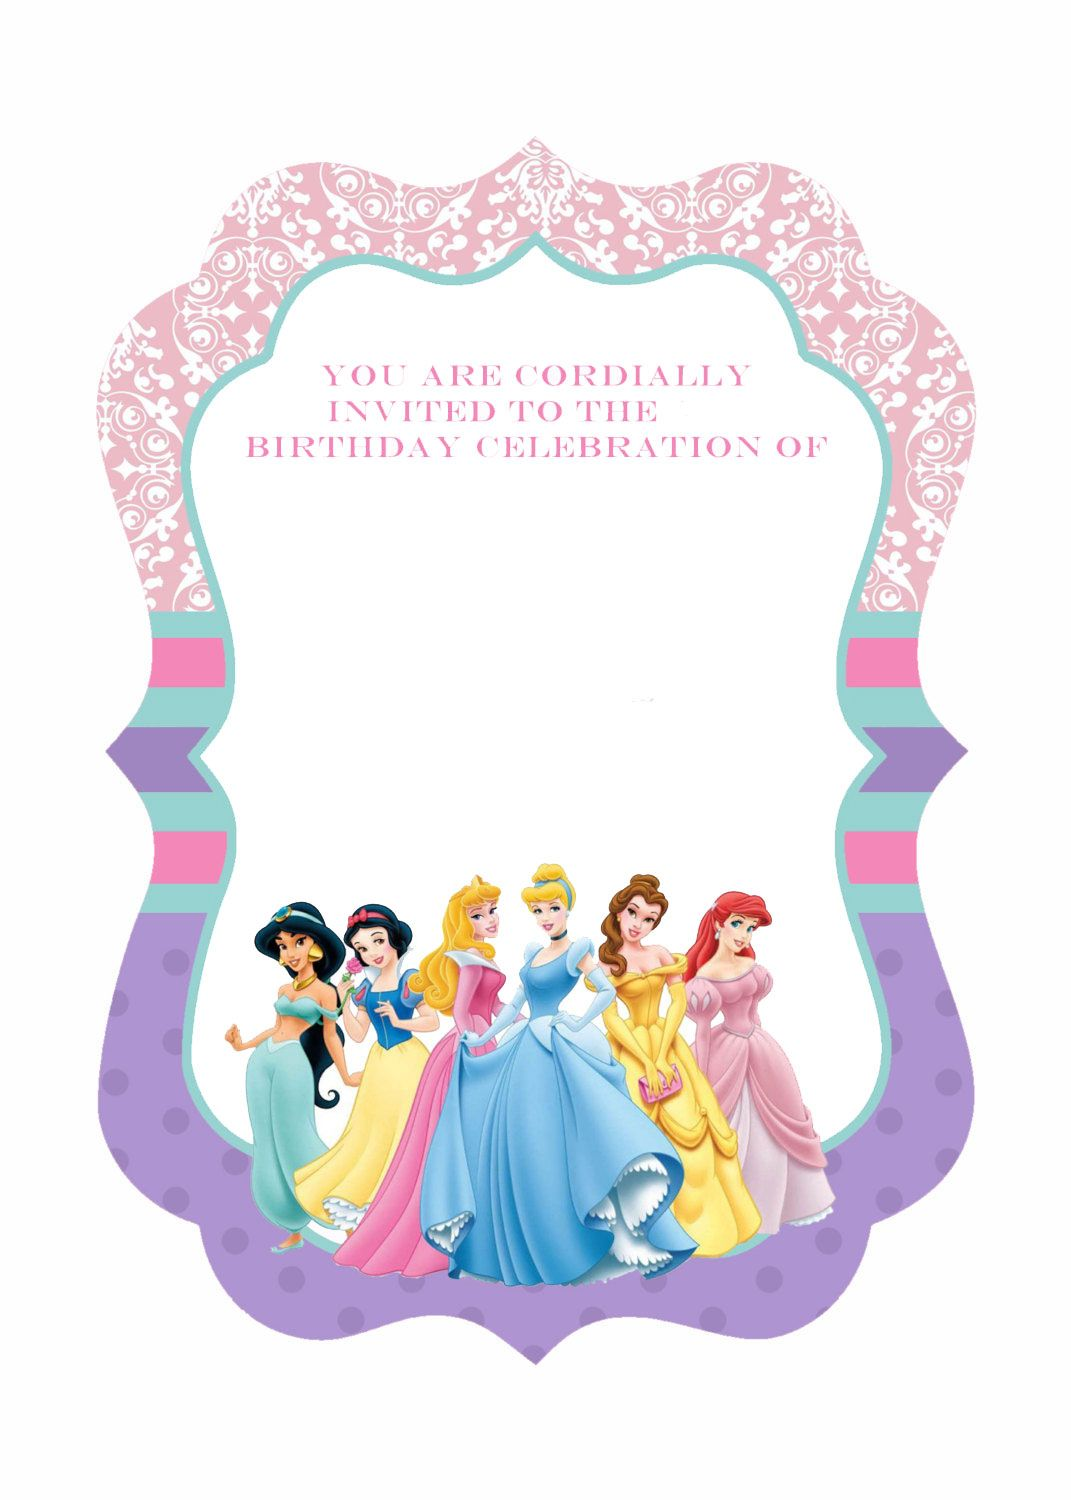 Cool FREE Template Free Printable Ornate Disney Princesses